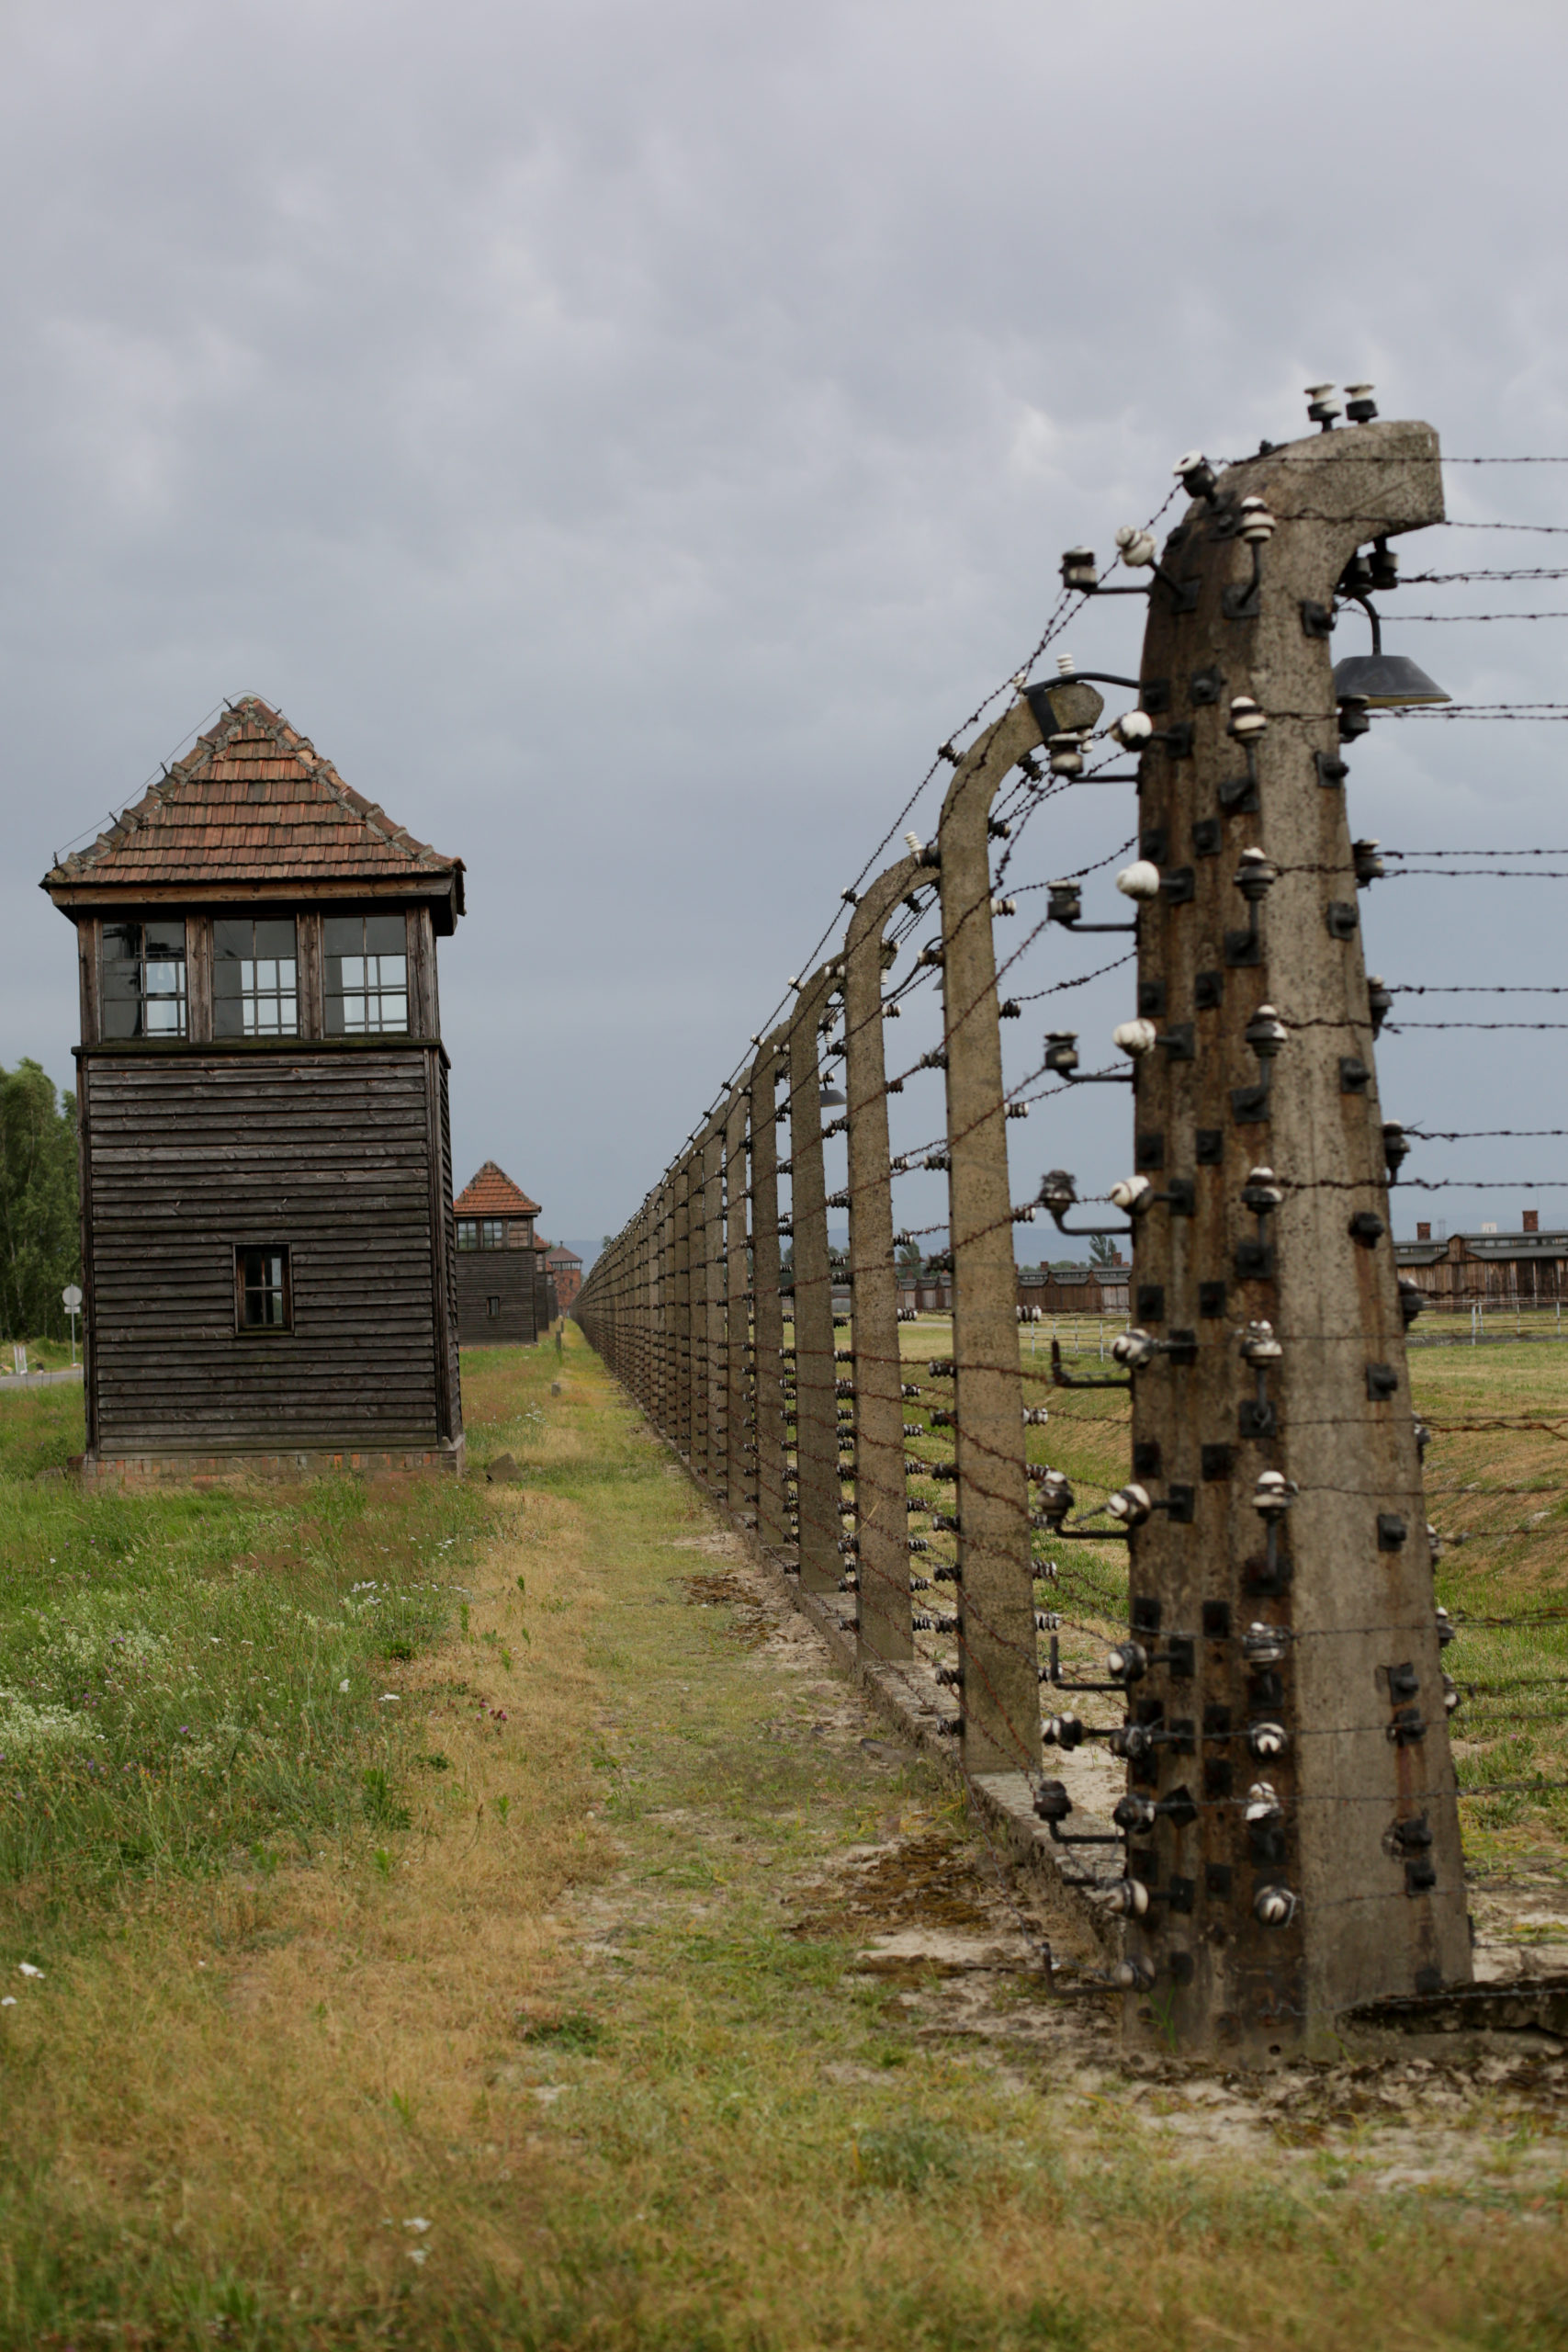 Photo of KL Auschwitz II-Birkenau taken by Jaroslaw Praszkiewicz.